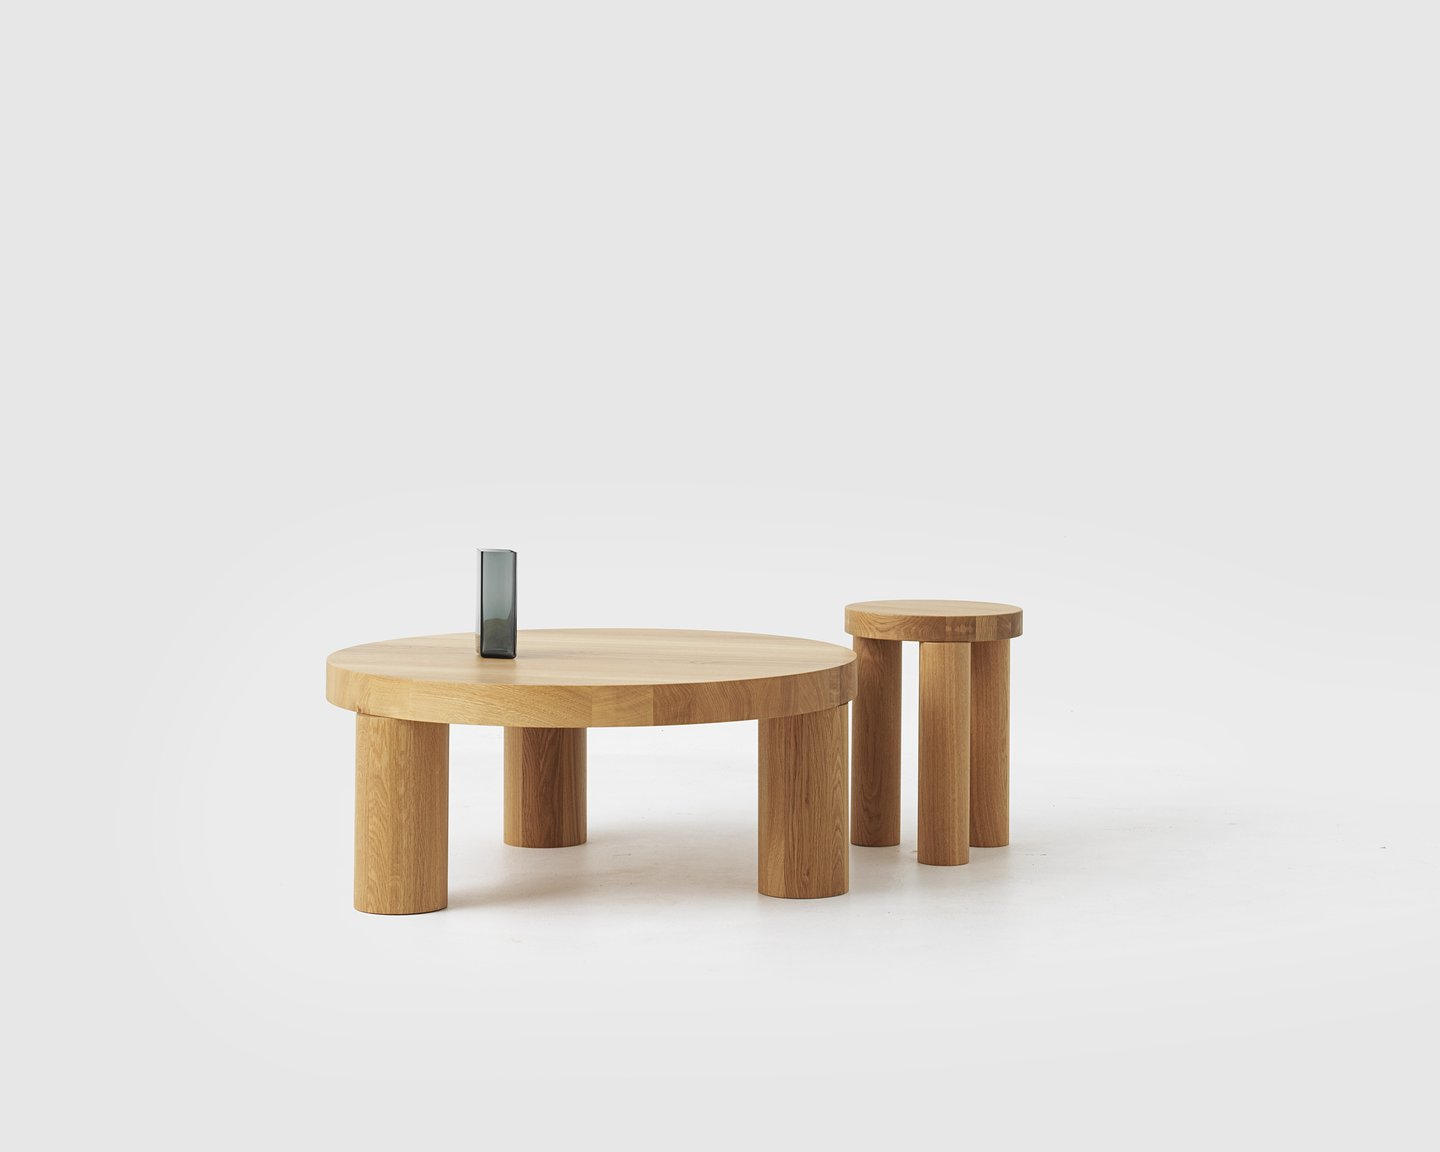 Image: uploads/2019_08/Offset_Table_and_stool_by_Philippe_Malouin-1-web-UPdated.jpg